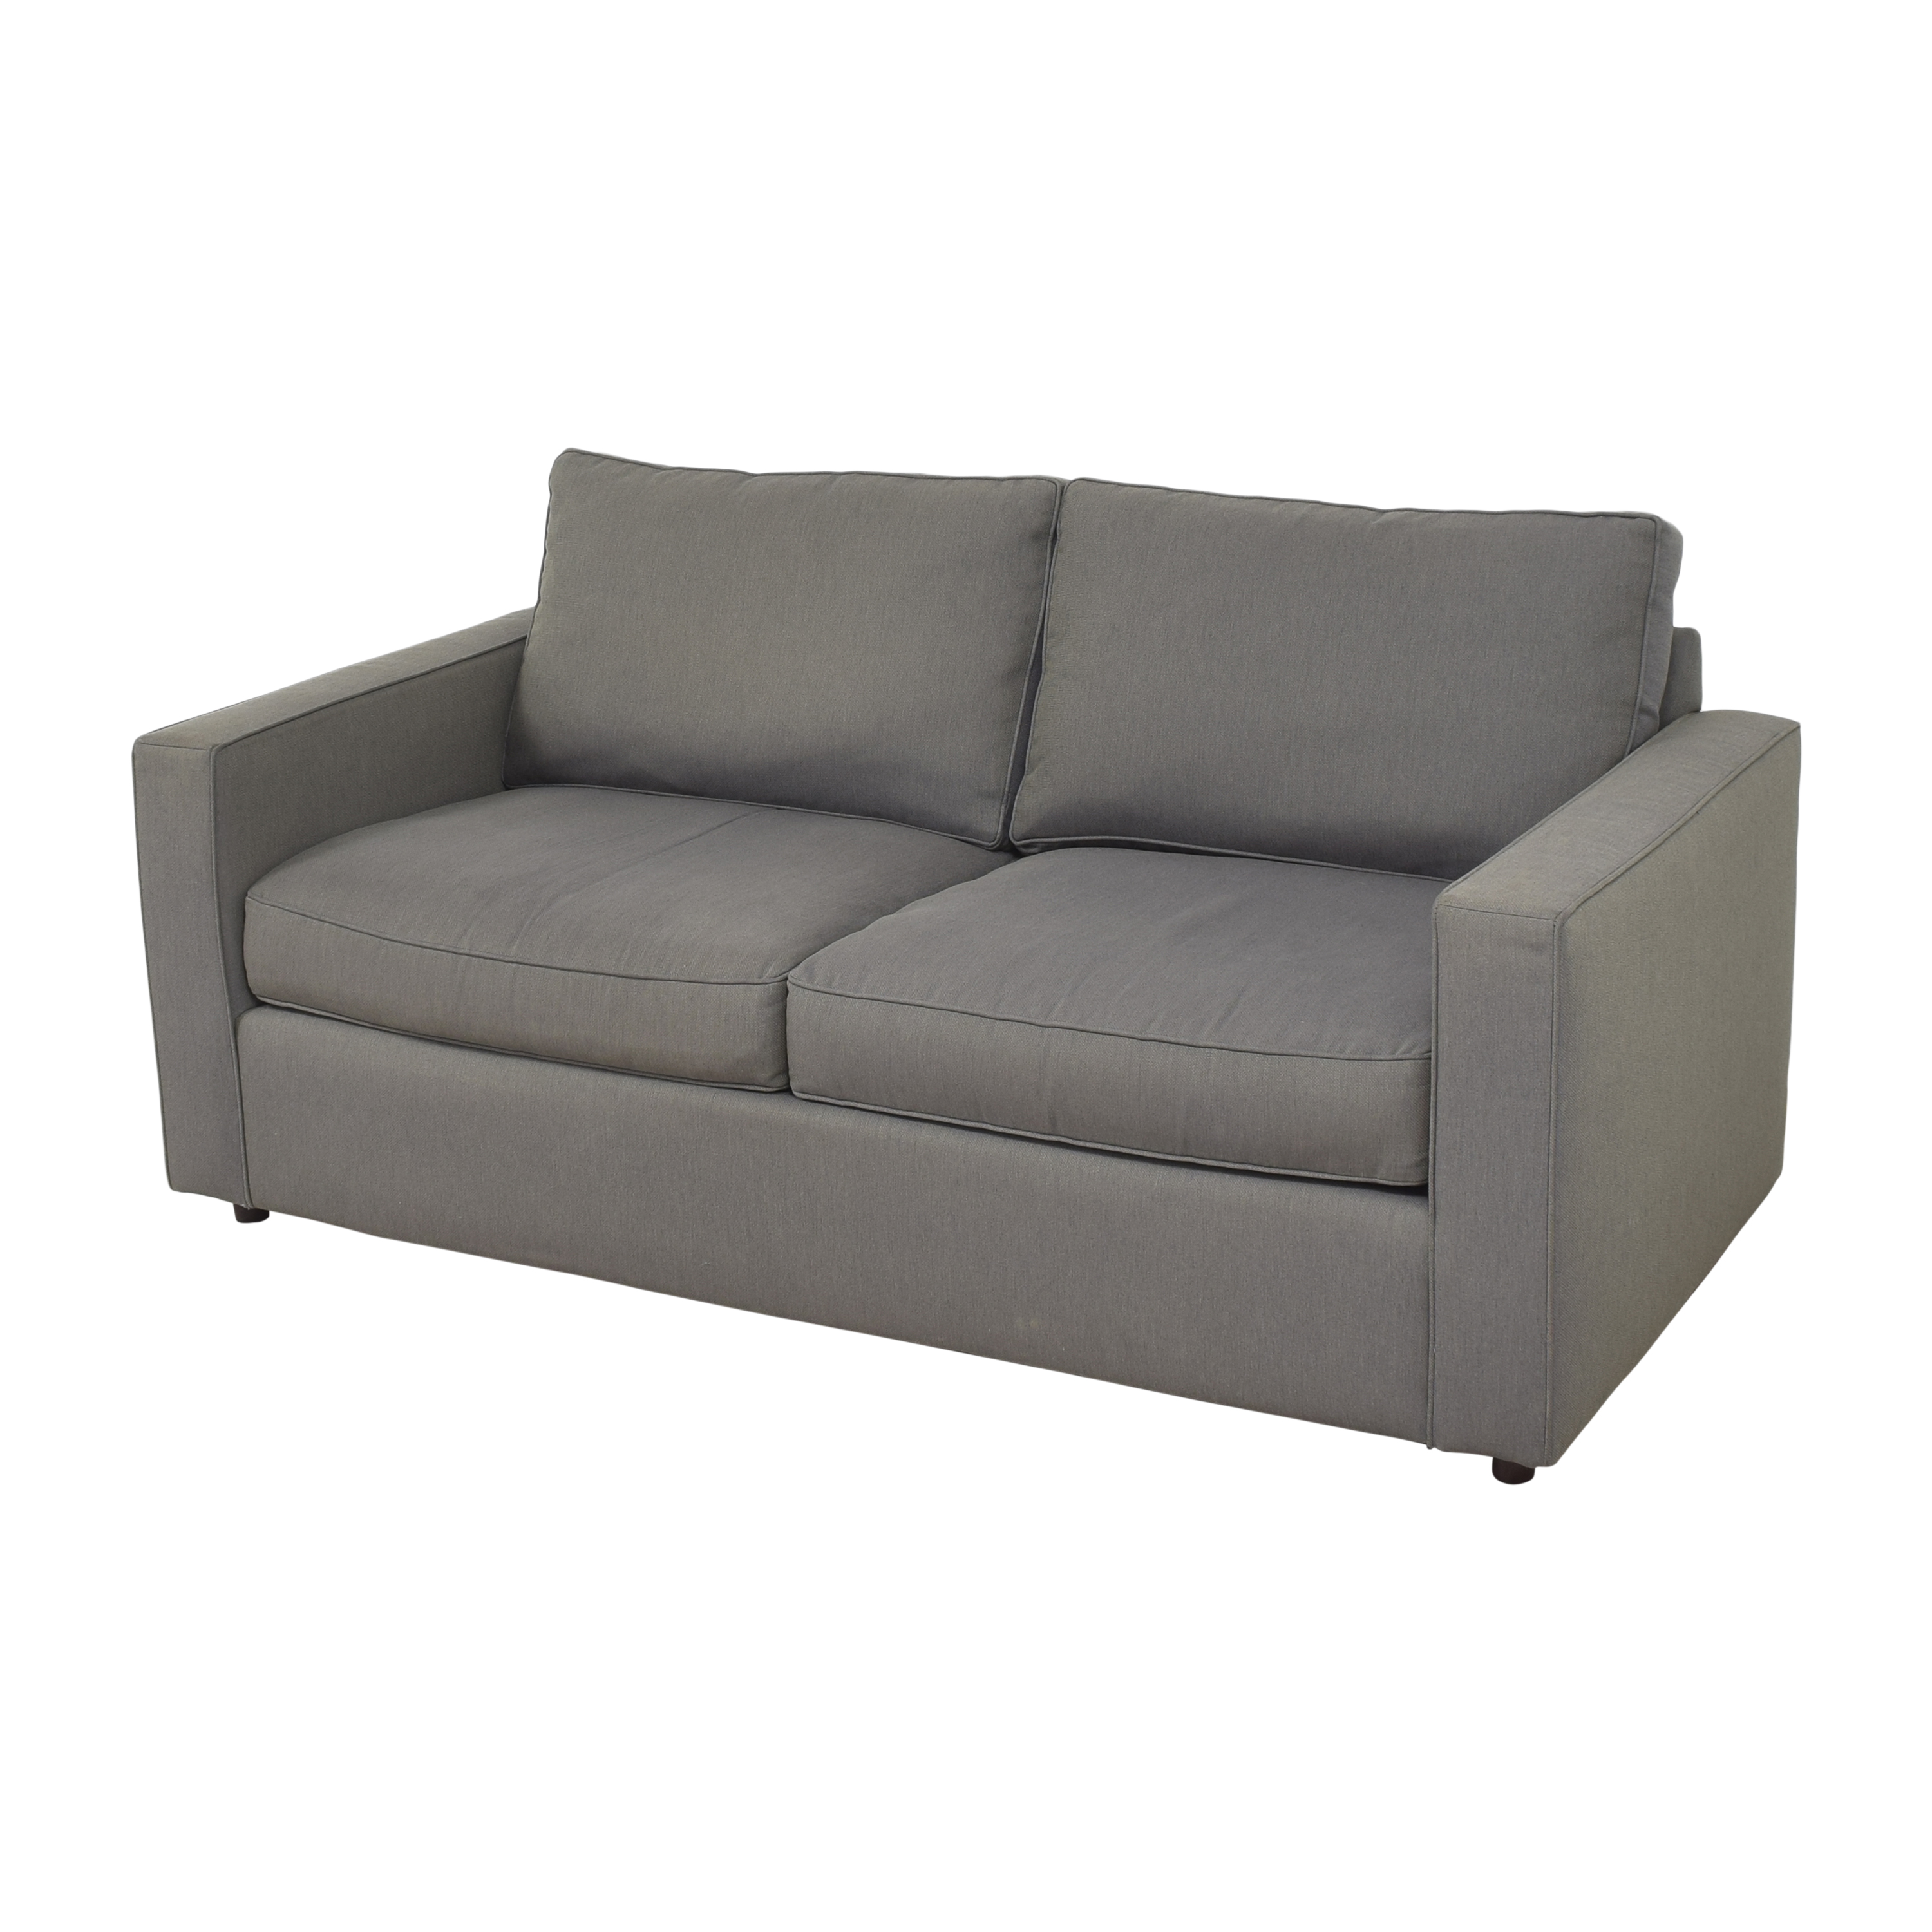 Room & Board Room & Board York Two Cushion Sofa Classic Sofas